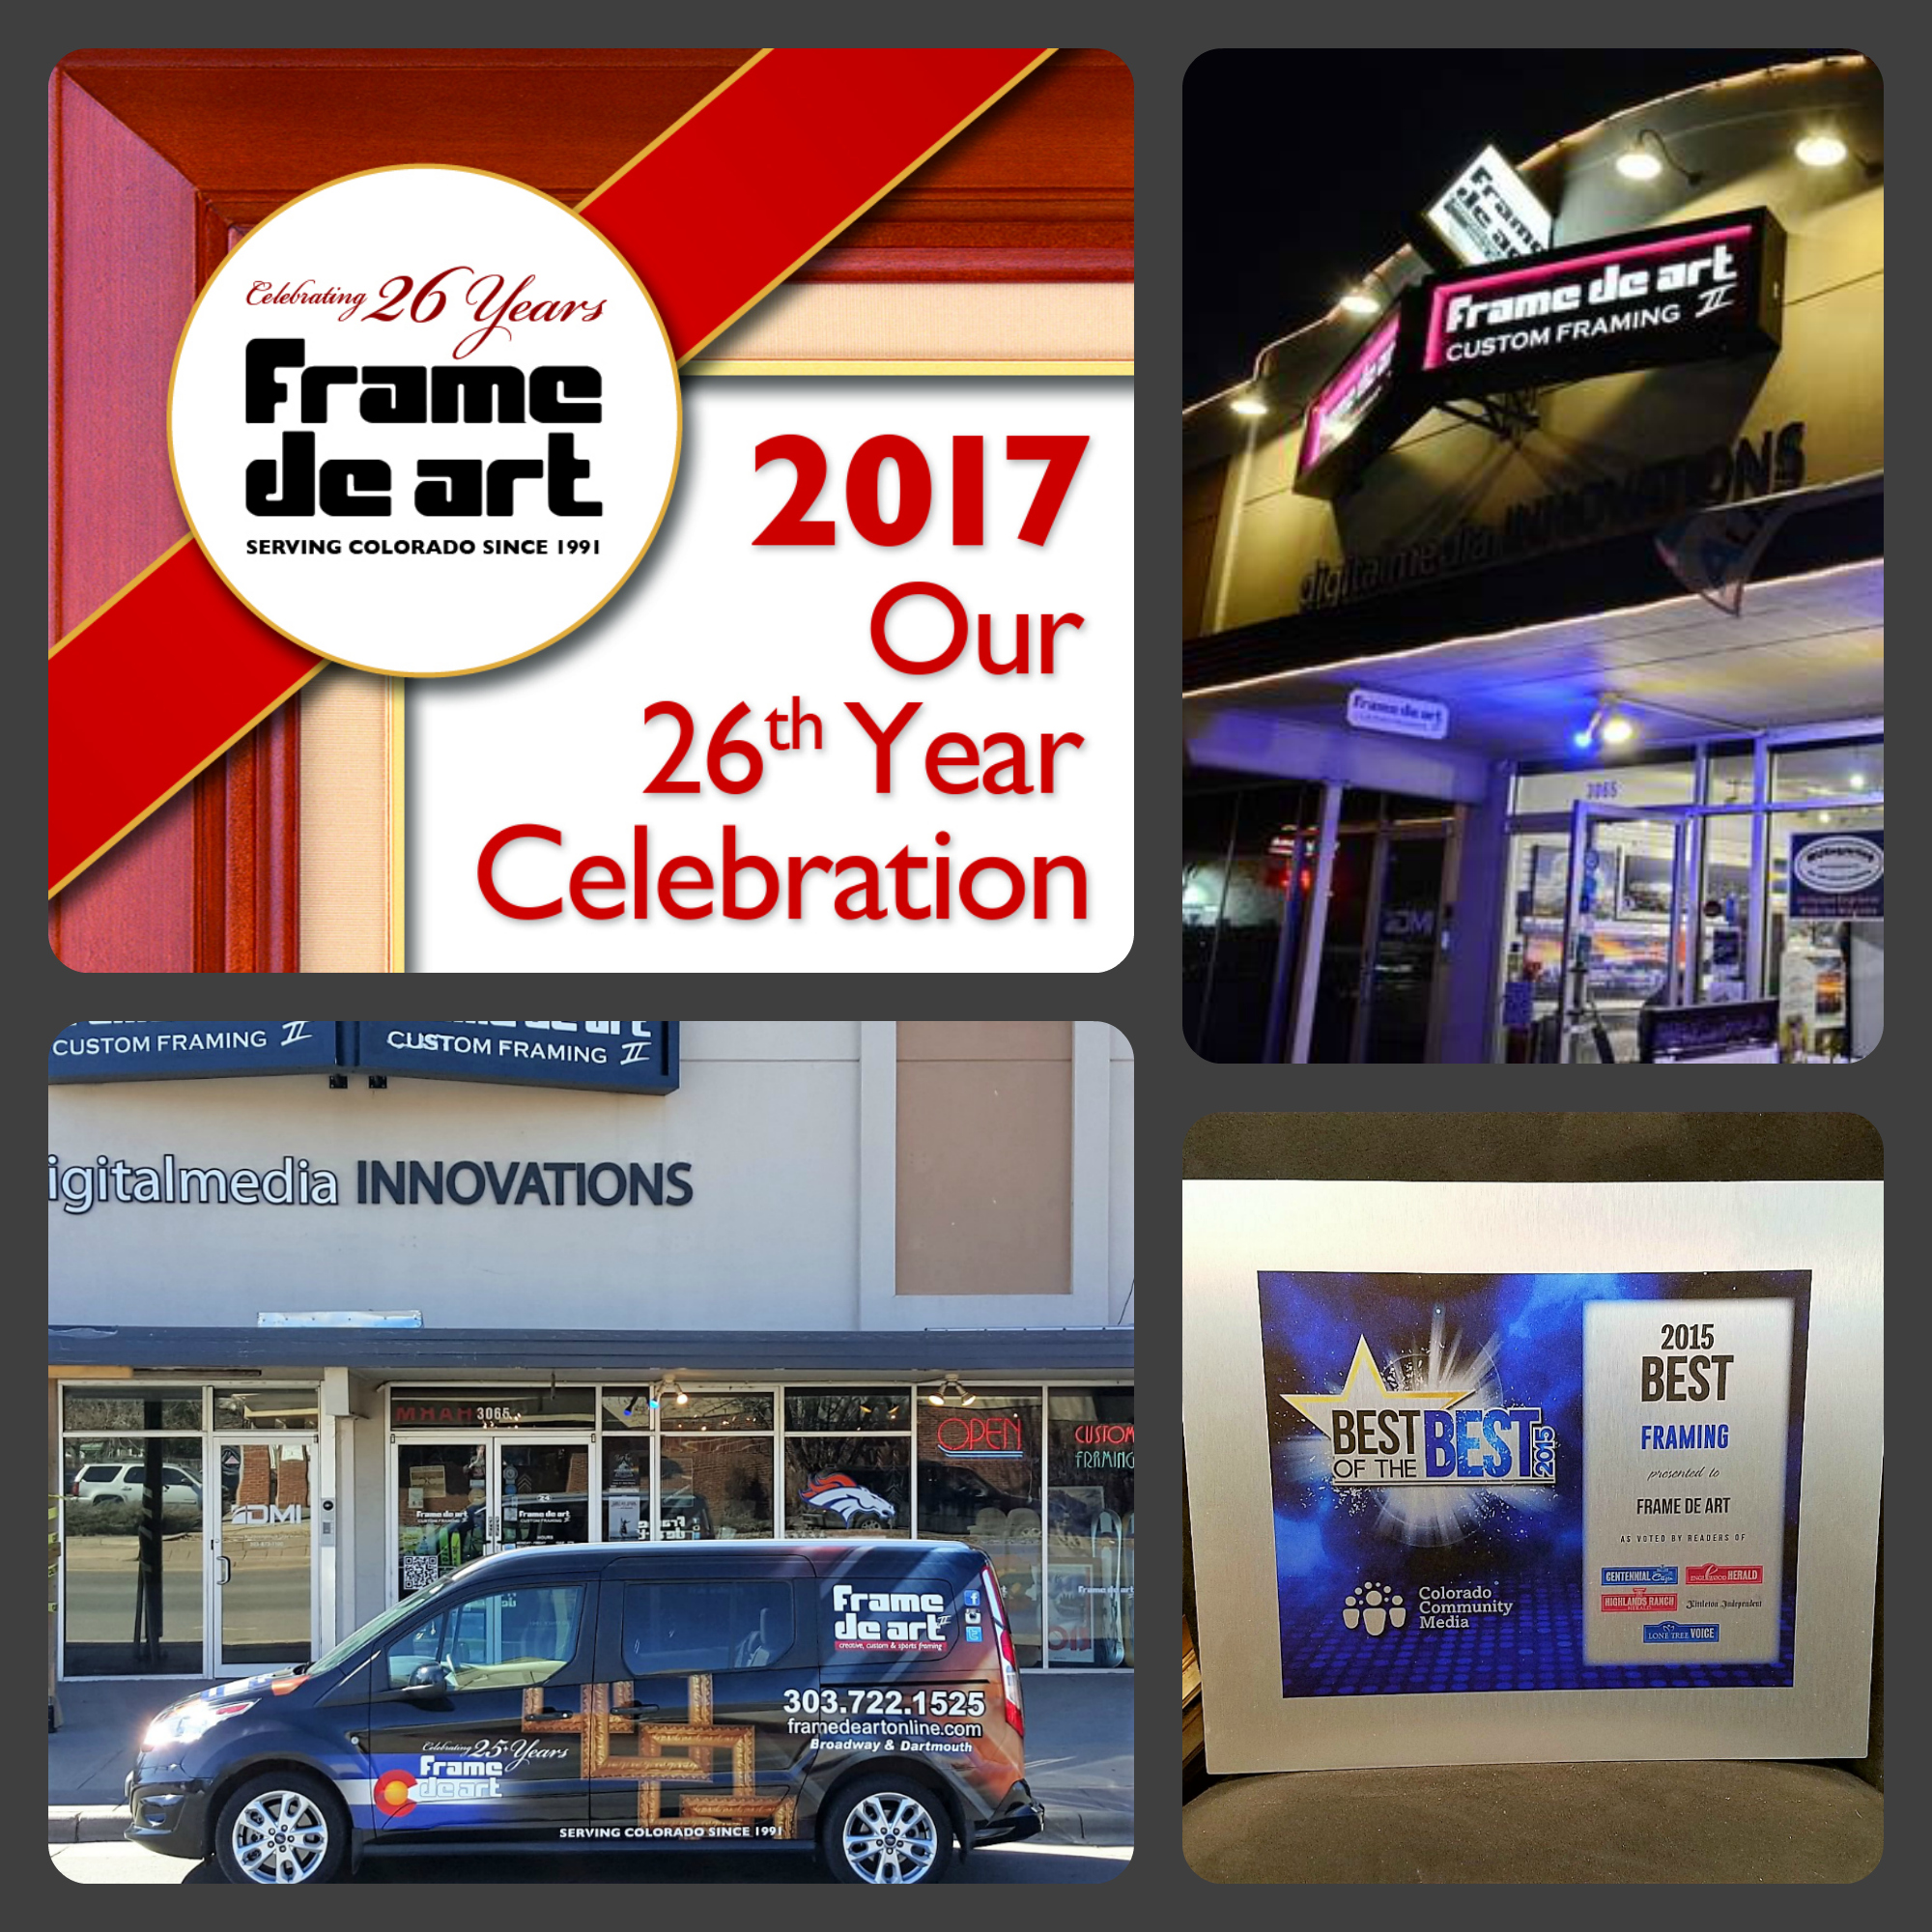 Today is Frame de Art's 26th Anniversary!